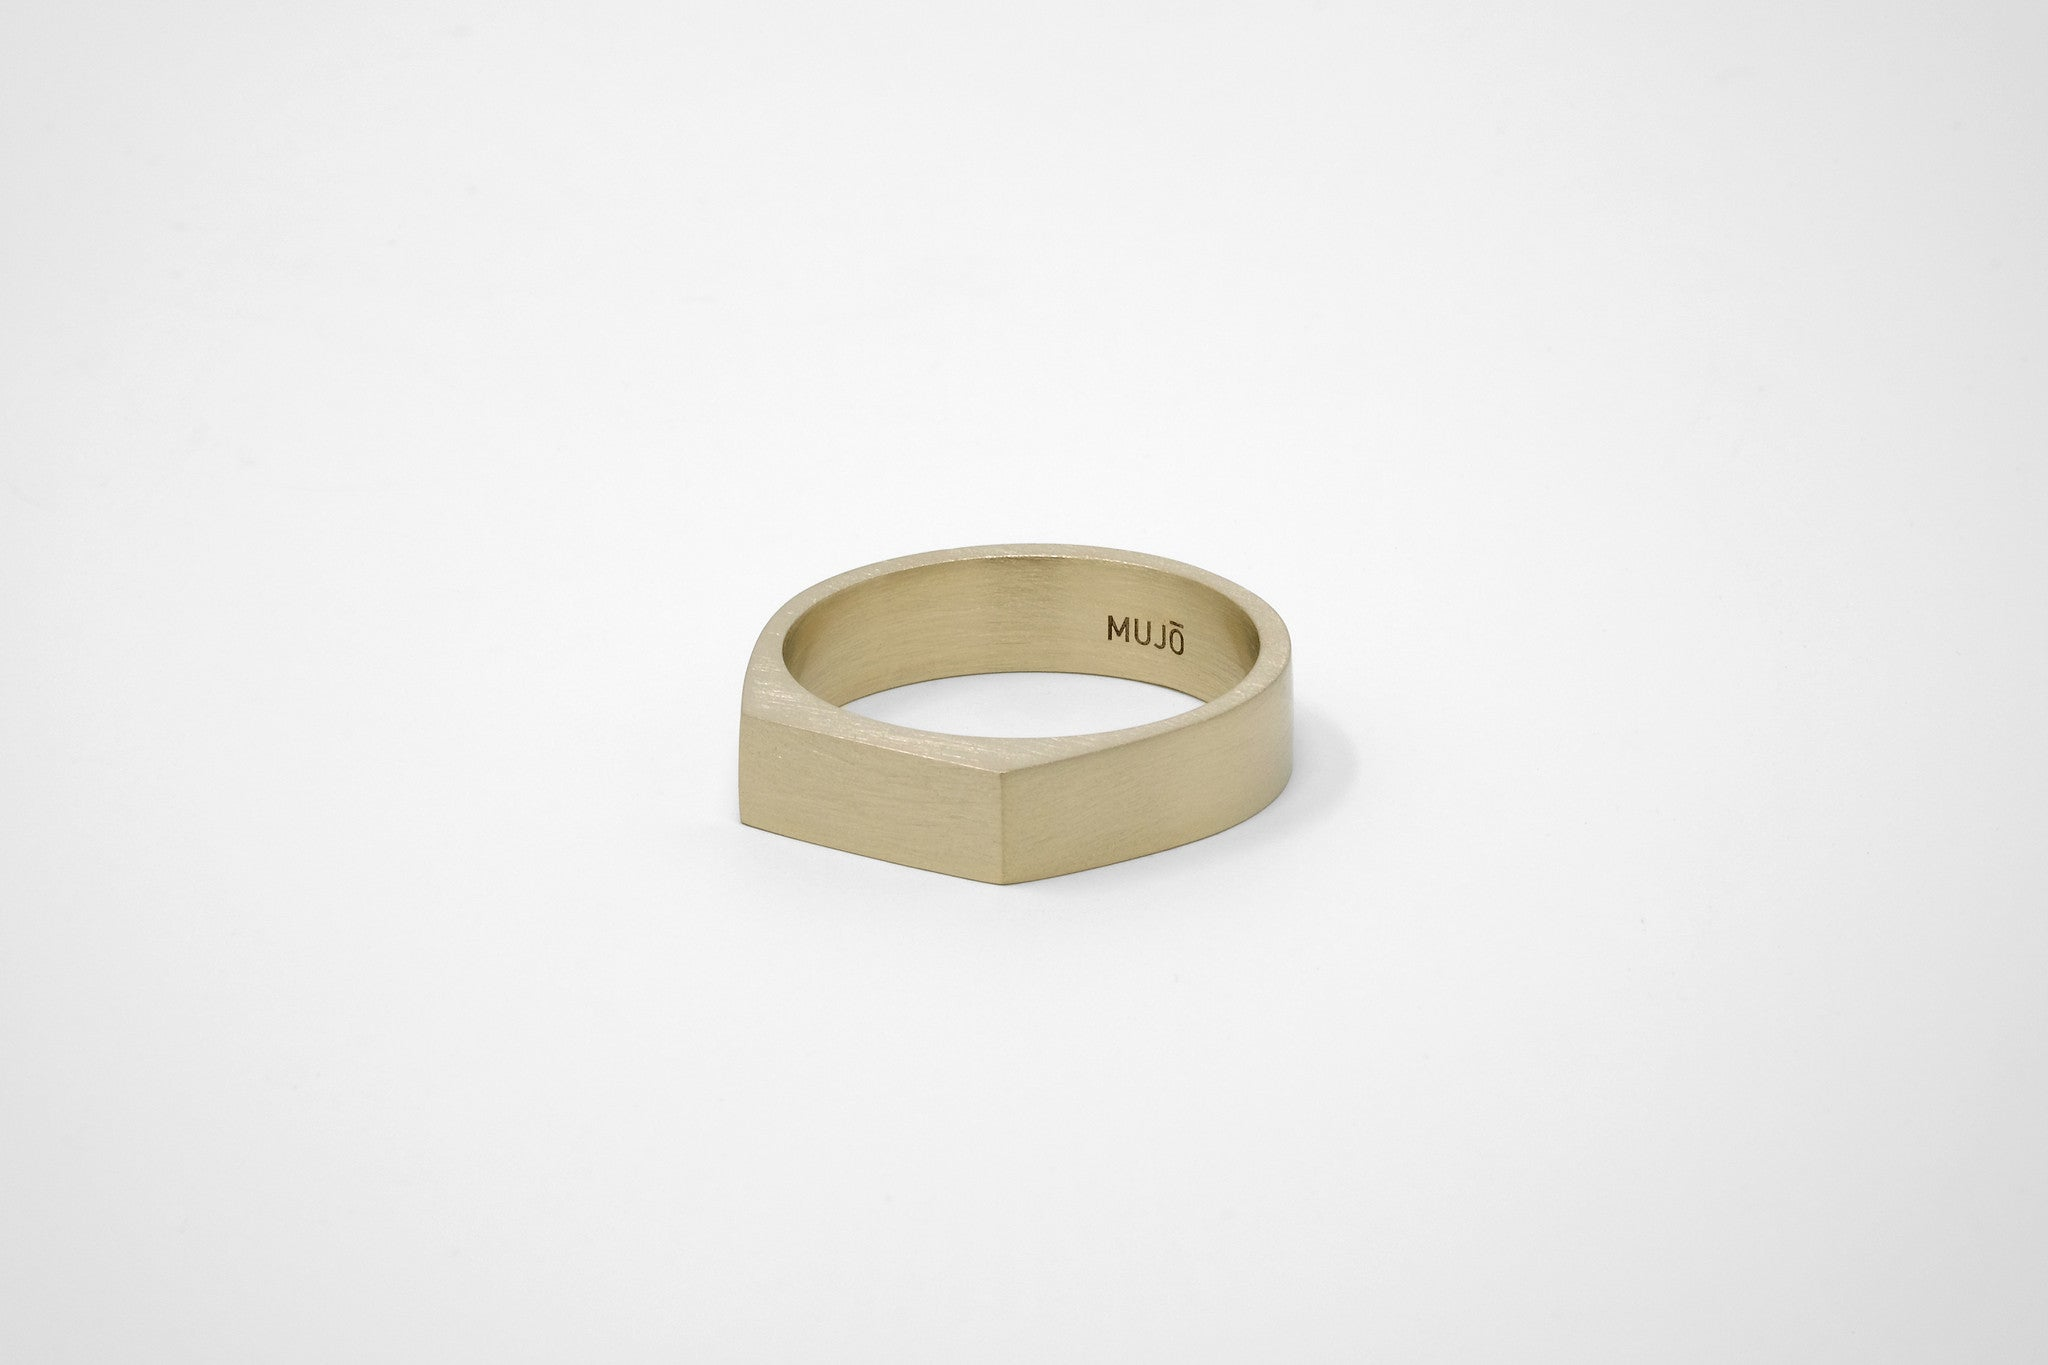 CS 6mm Signet Ring // Brass - Men's Ring - MUJO NYC - 1